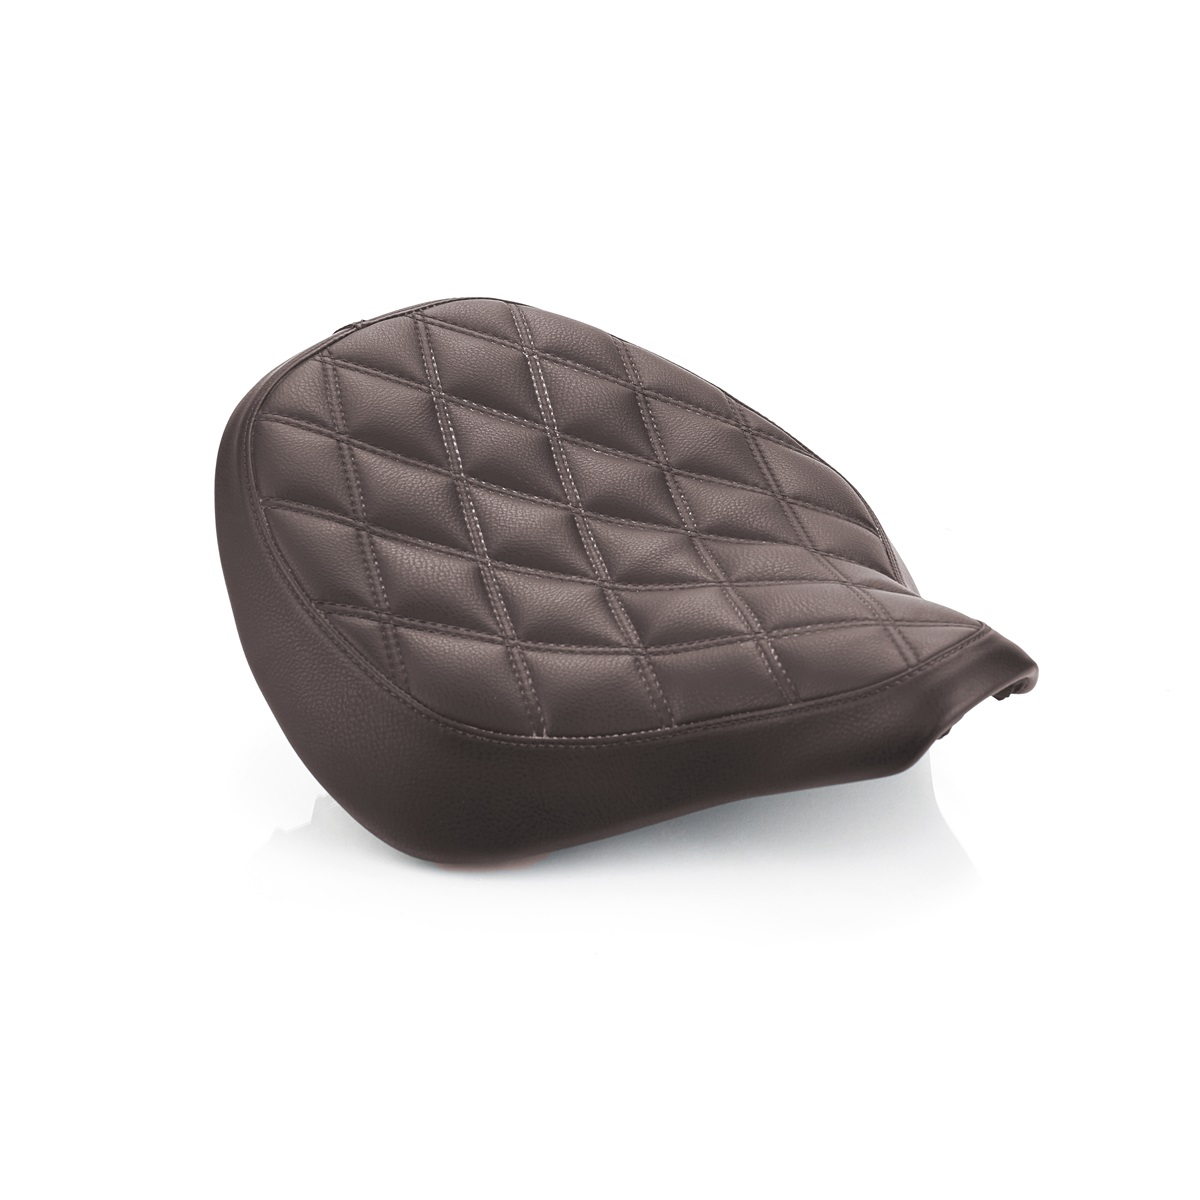 Triumph Bobber Quilted Seat - Brown